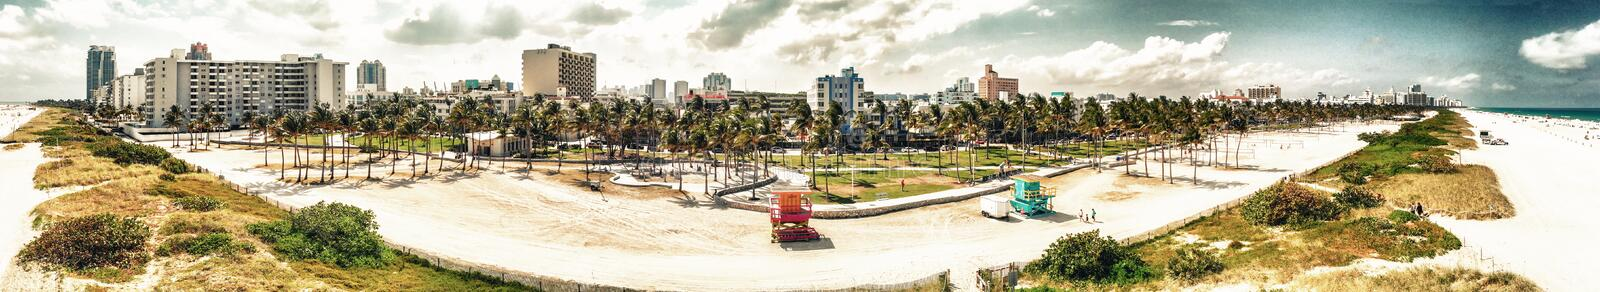 Panoramic aerial view of Miami Beach and Ocean Drive on a beautiful day stock photos